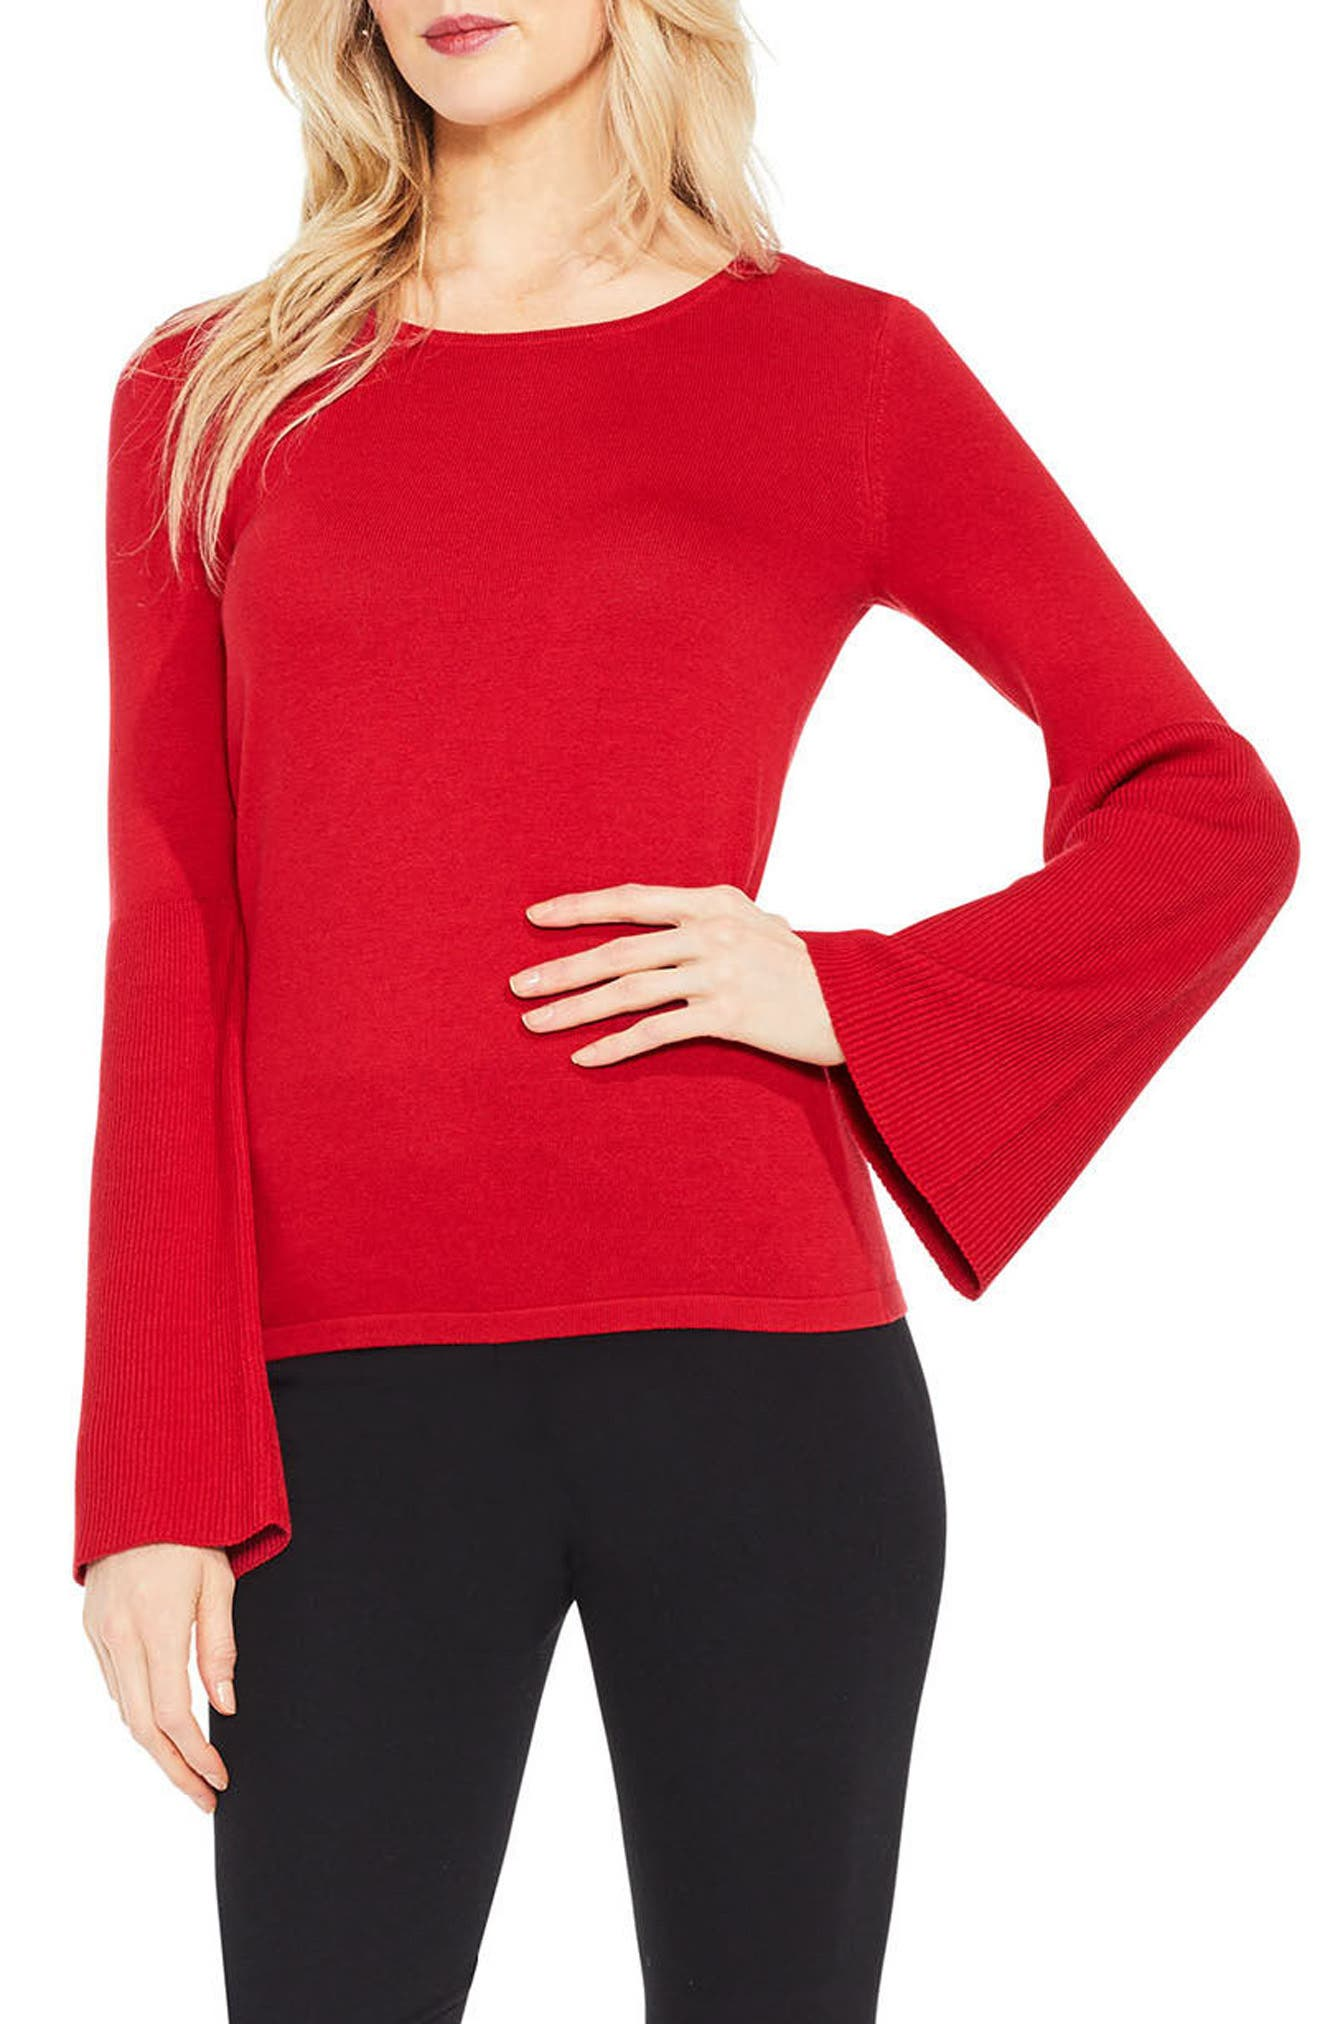 Main Image - Vince Camuto Ribbed Bell Sleeve Sweater (Regular & Petite)